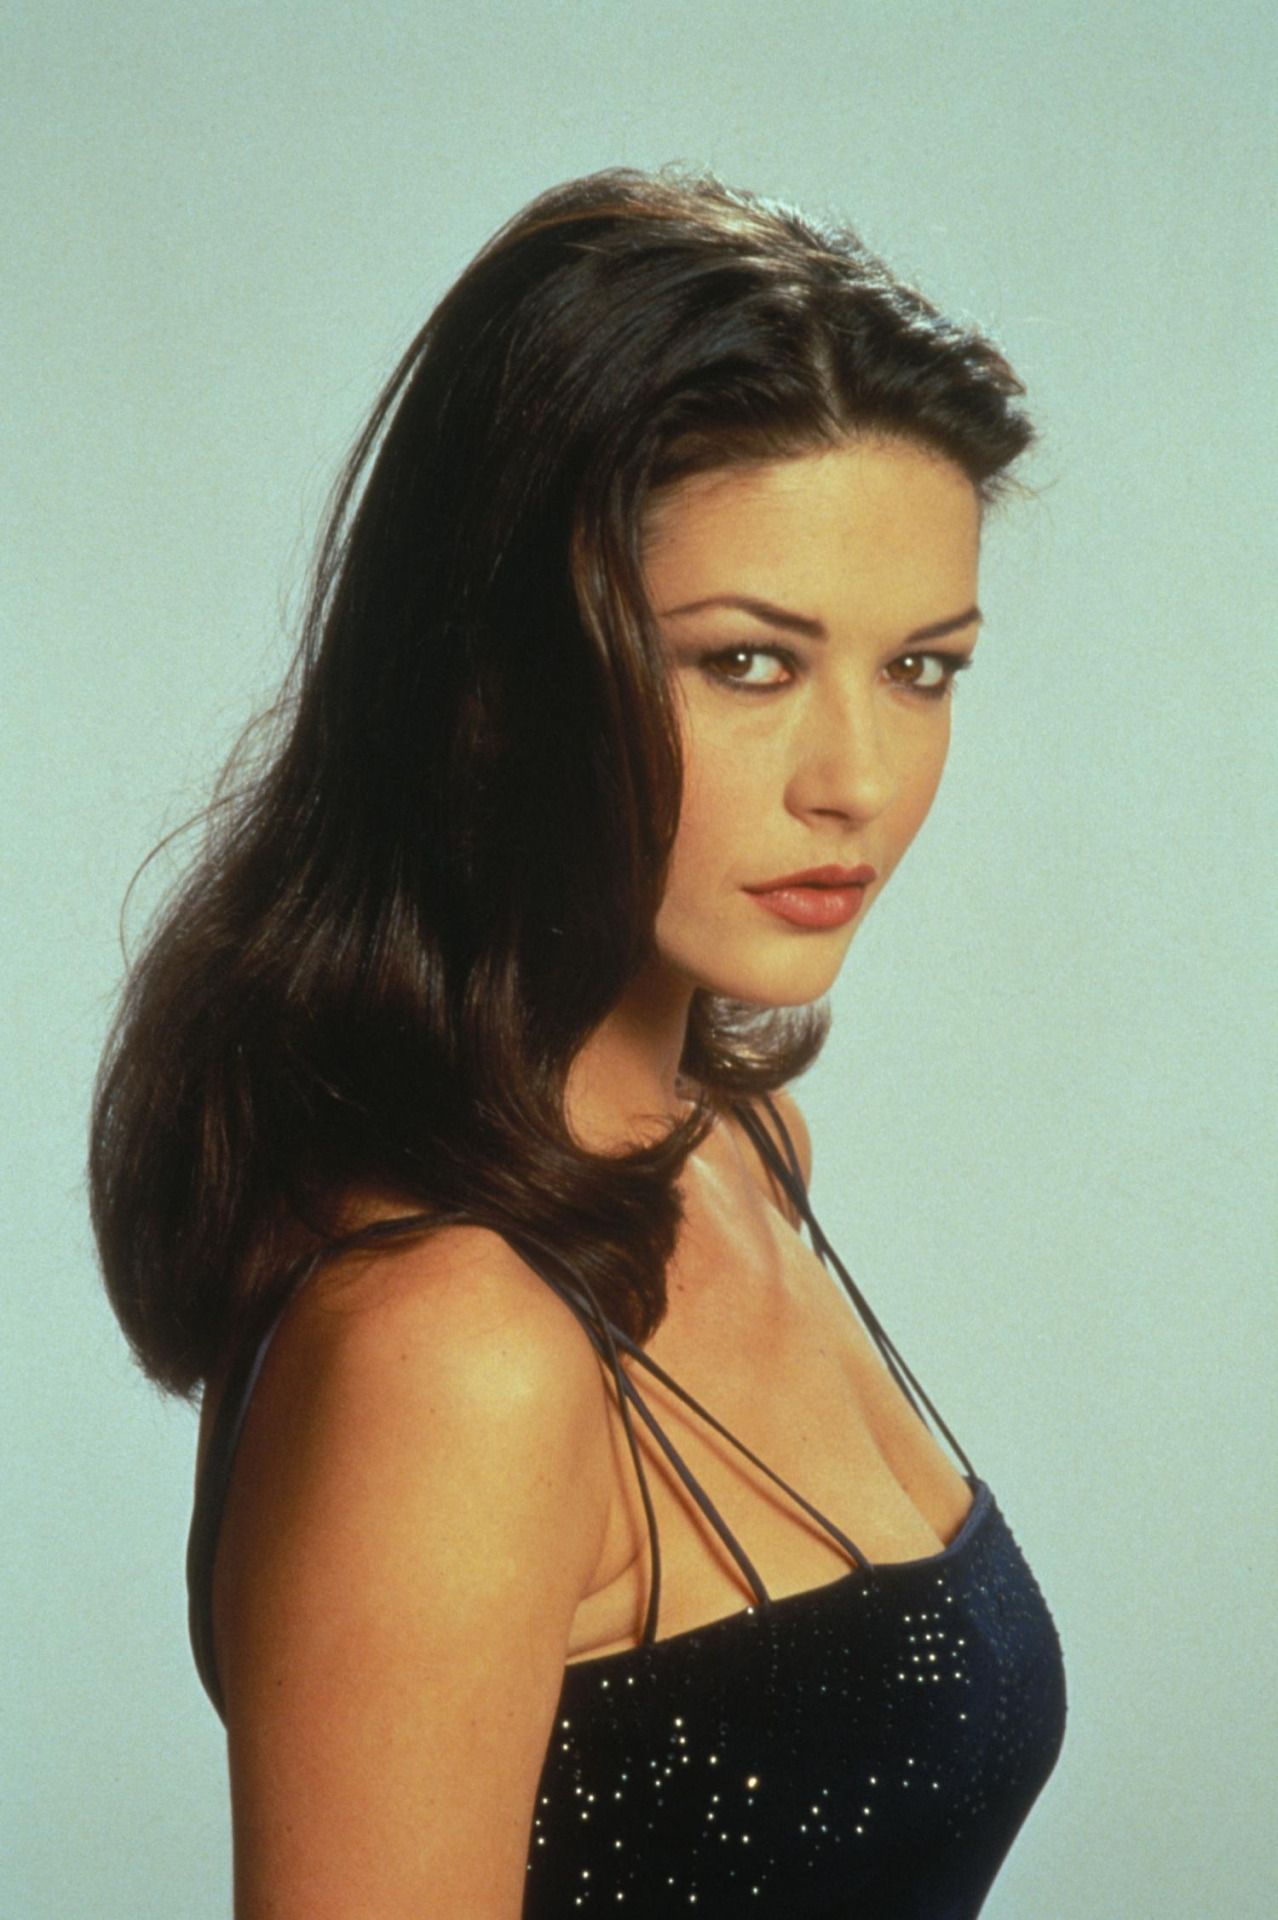 Watch Catherine Zeta-Jones (born 1969) video